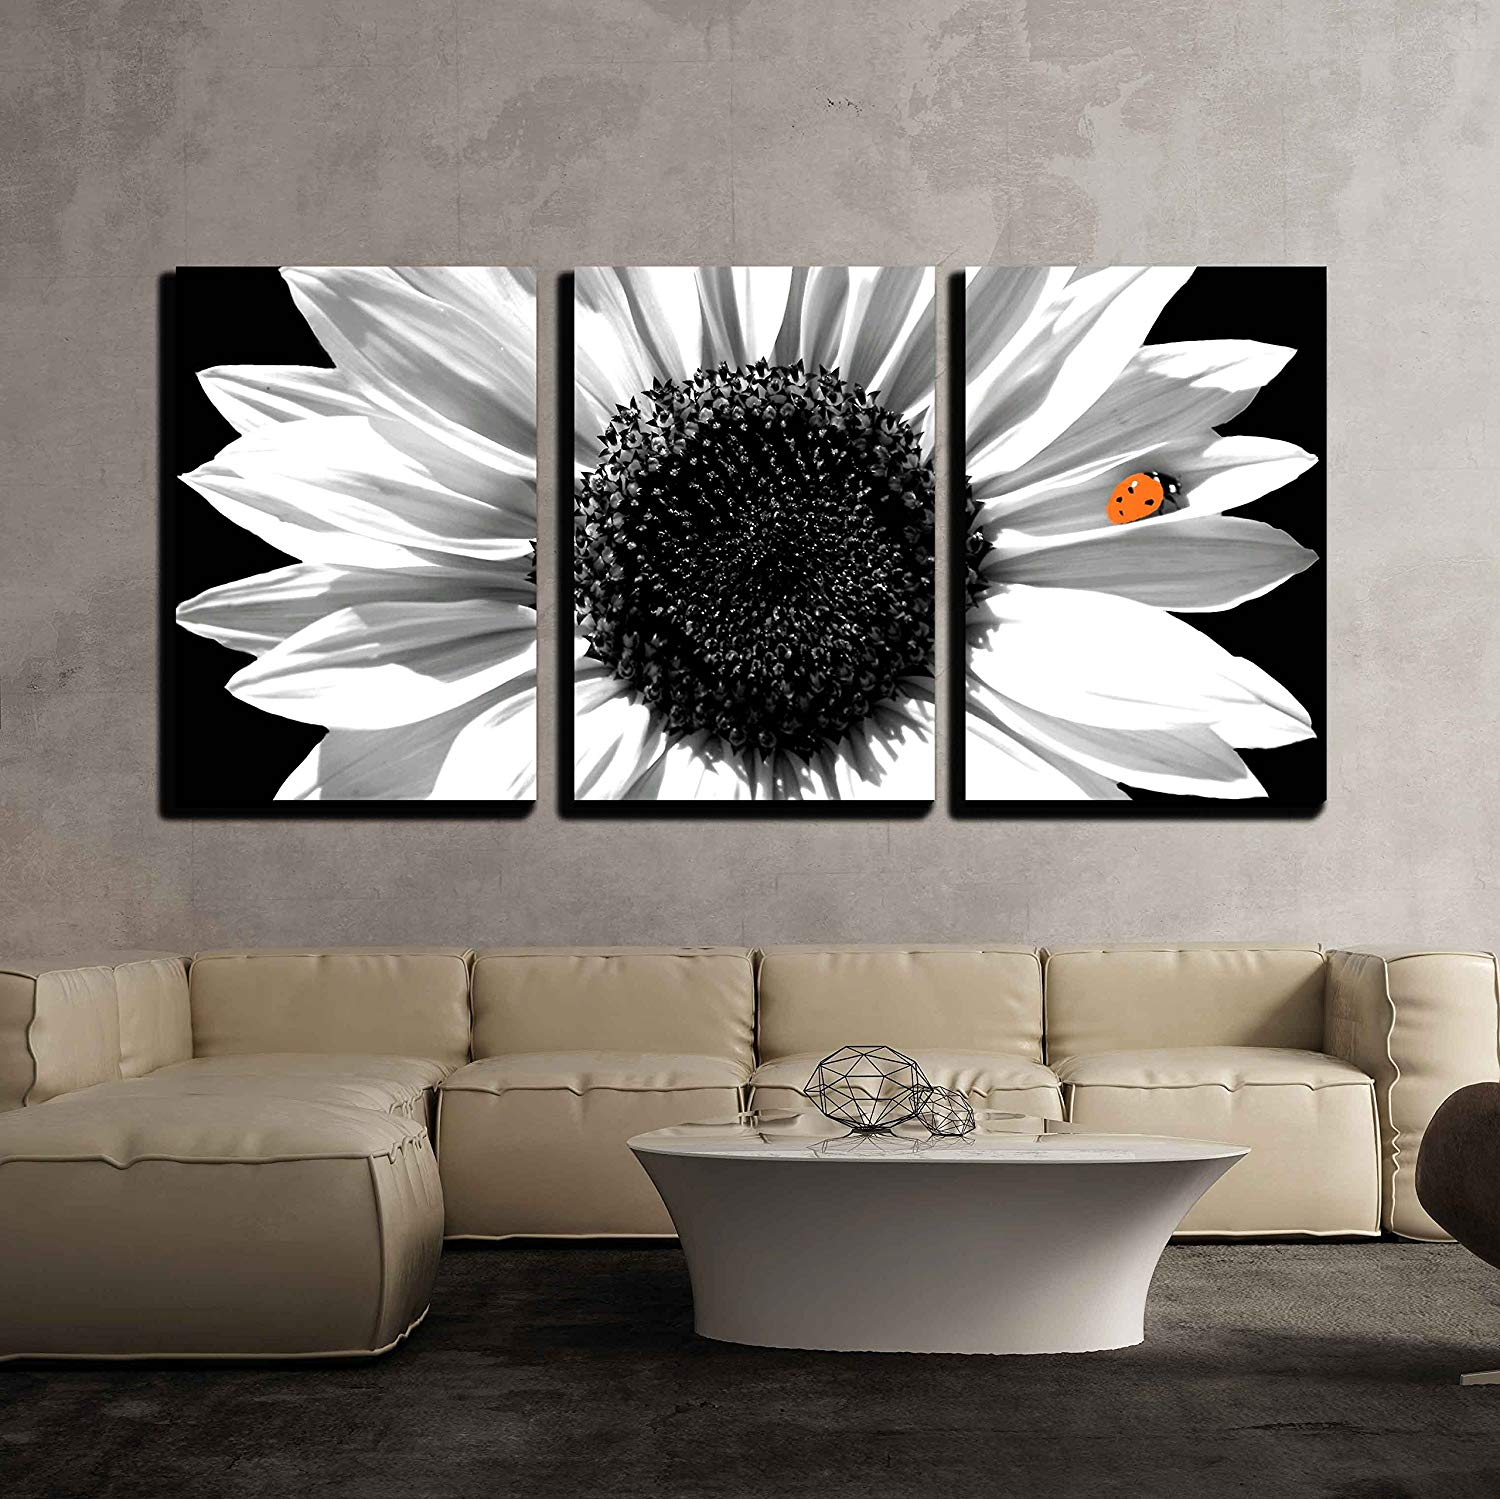 wall26-3 Piece Canvas Wall Art Sunflower in Black and White with Red Ladybug Modern Home Decor Stretched and Framed Ready to Hang